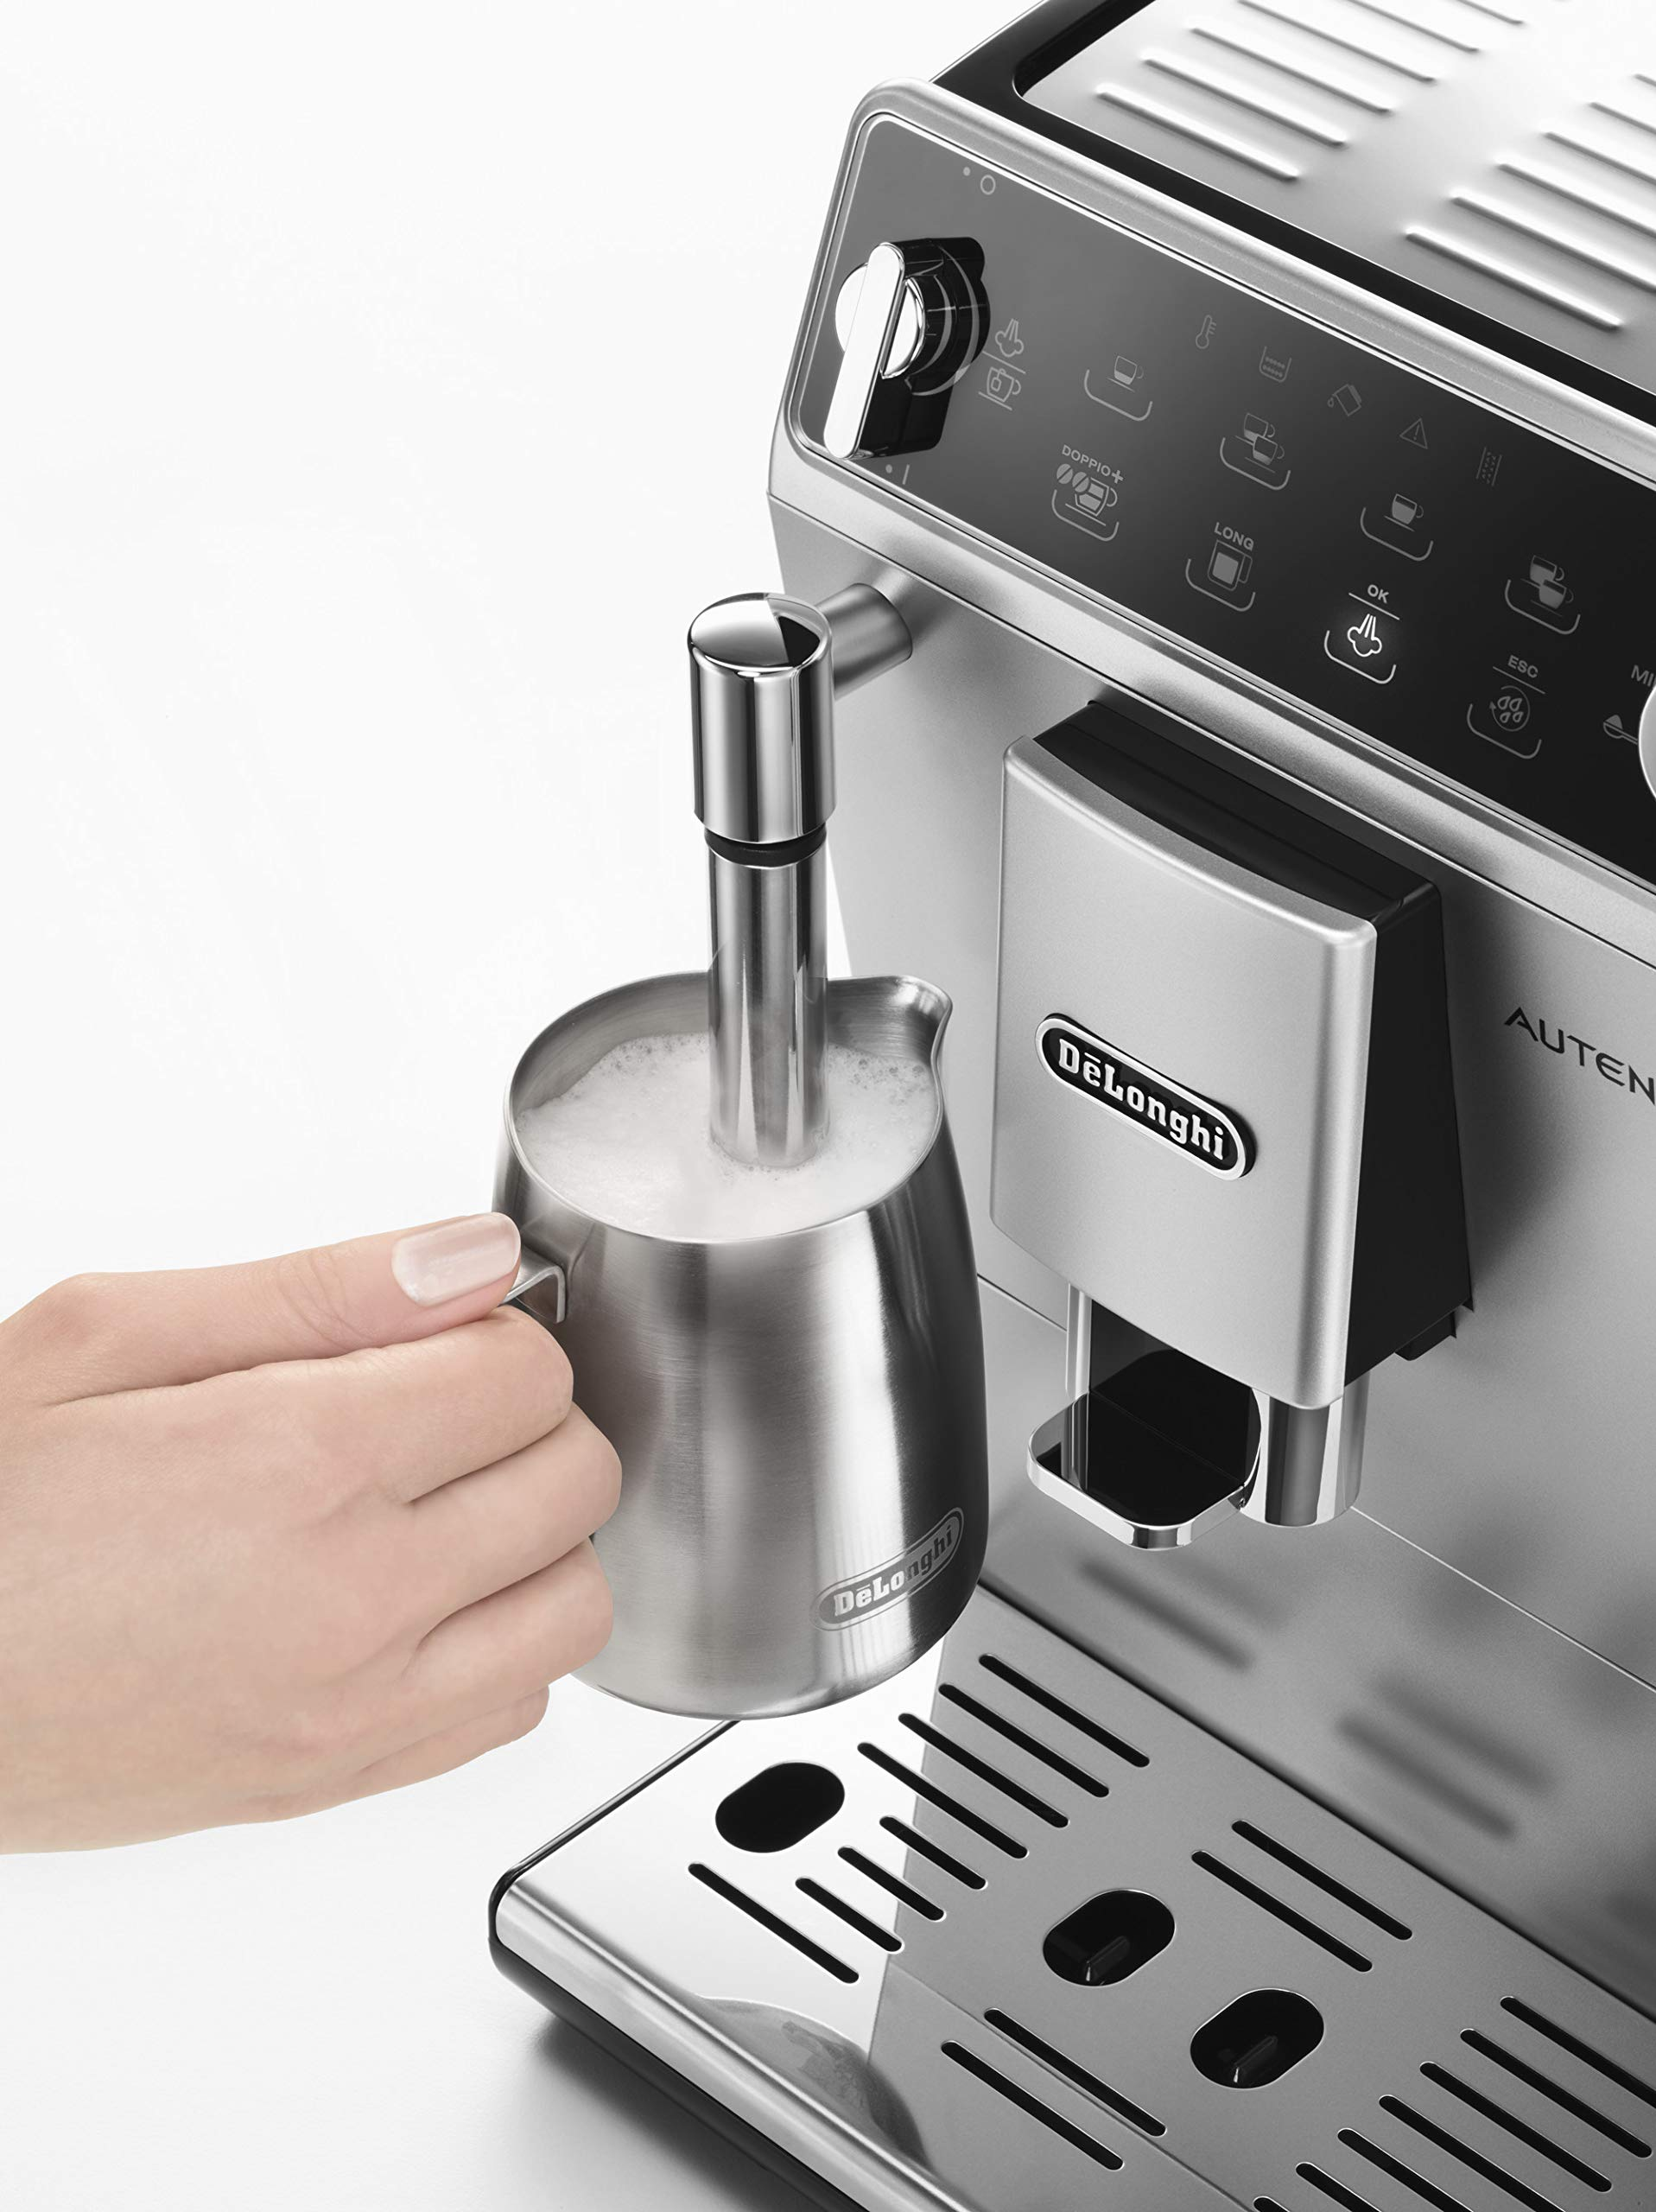 81vlAEGAuxL - De'Longhi Autentica Cappuccino, Fully Automatic Bean to Cup Coffee Machine, Espresso Maker, ETAM29.660.SB, Silver and…